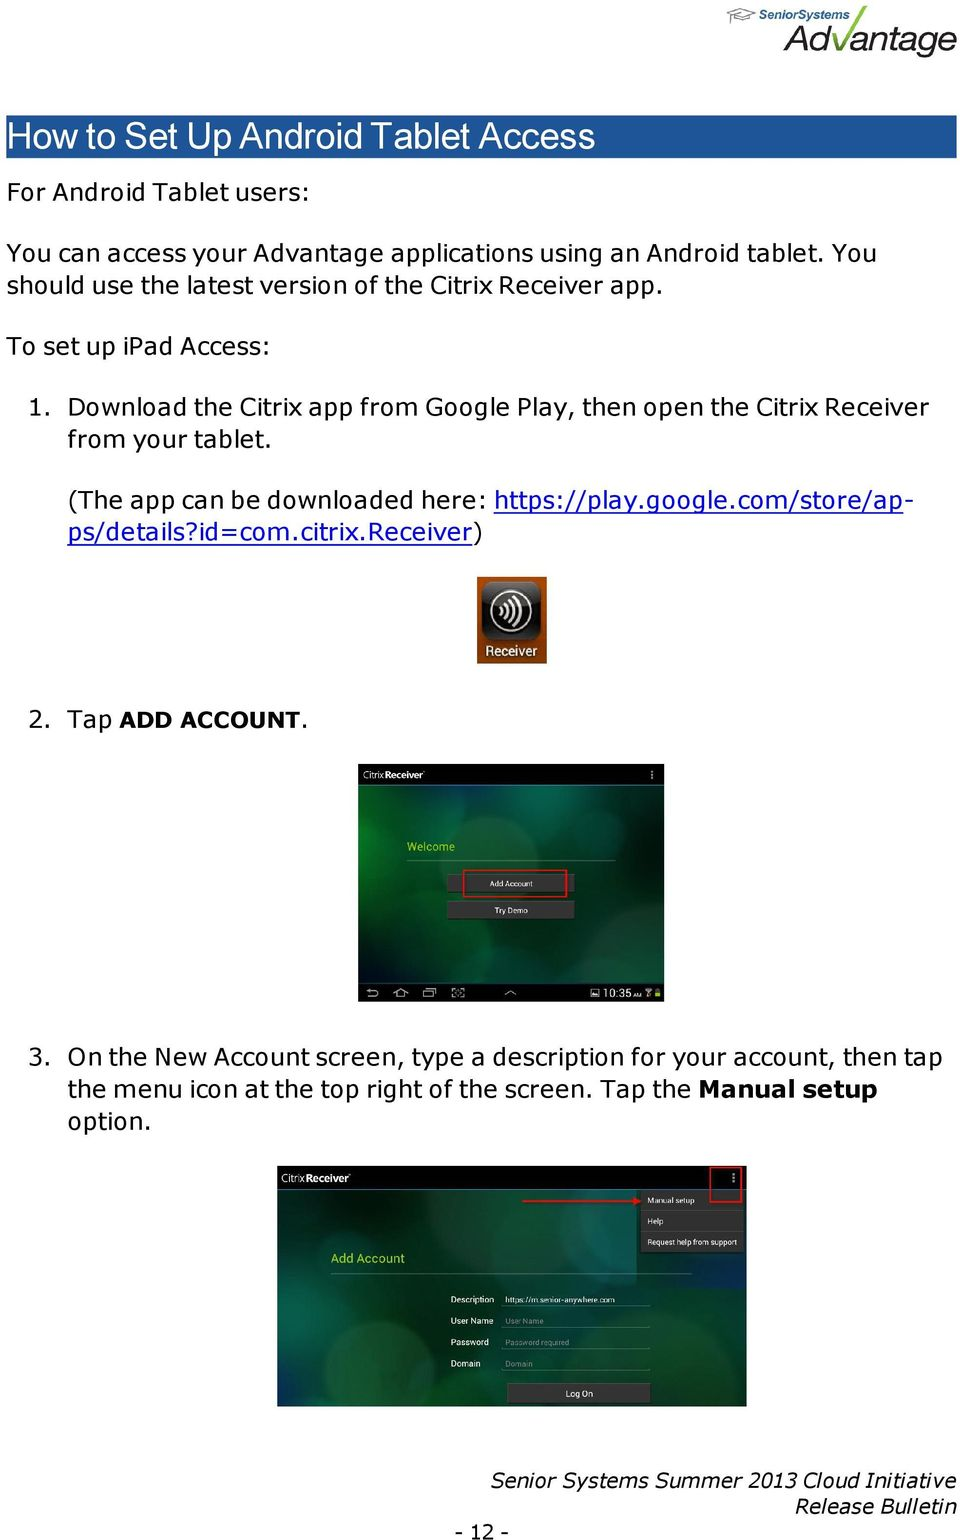 Download the Citrix app from Google Play, then open the Citrix Receiver from your tablet. (The app can be downloaded here: https://play.google.